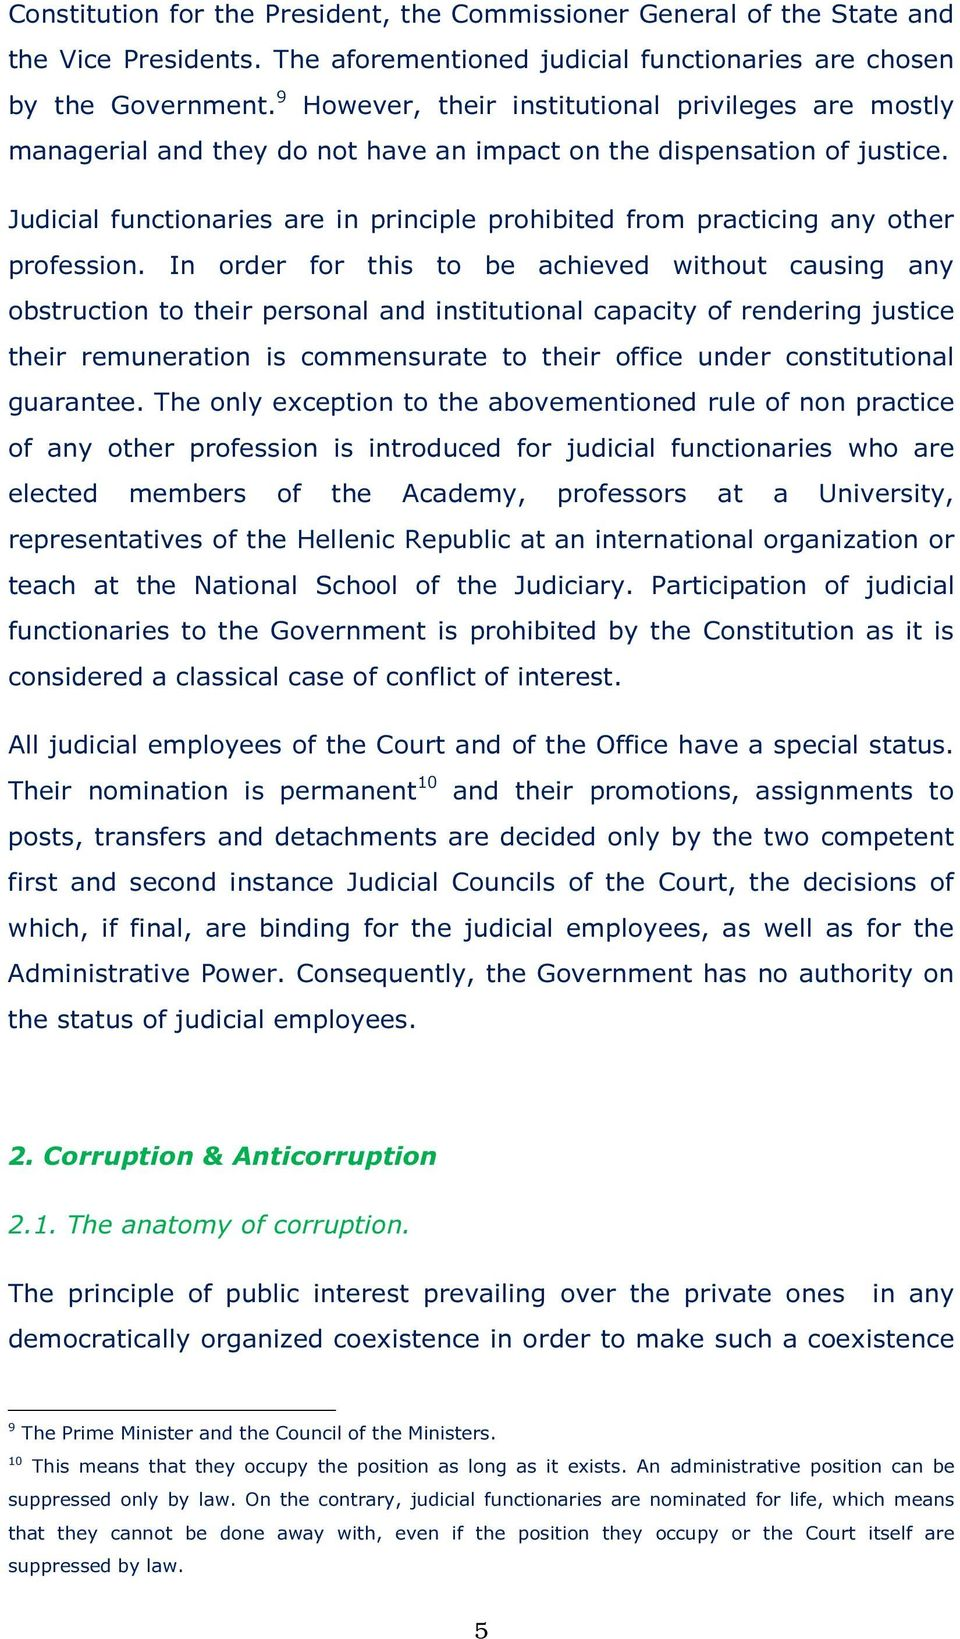 Judicial functionaries are in principle prohibited from practicing any other profession.